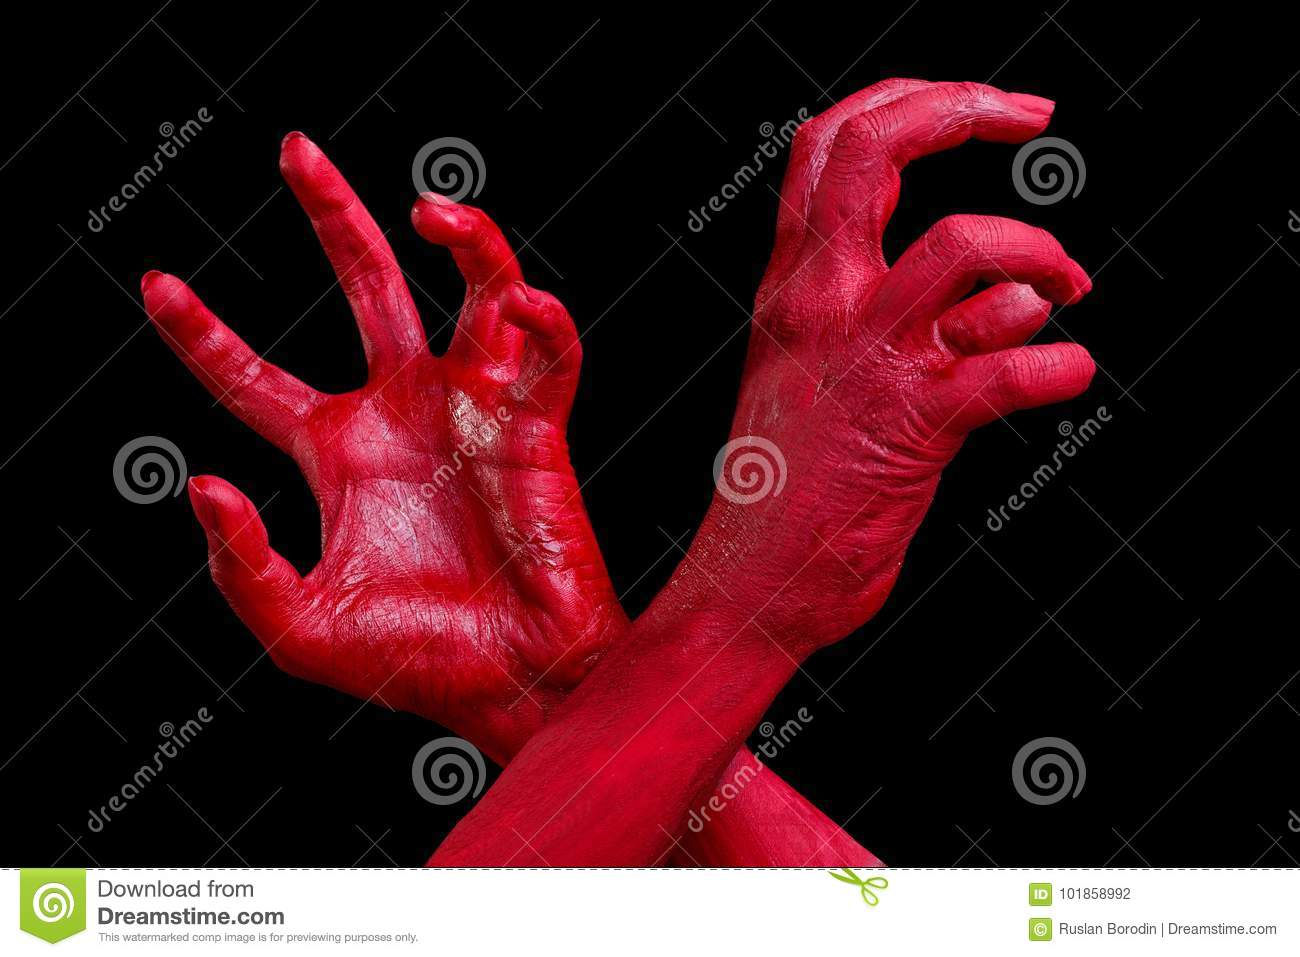 human hands painted in